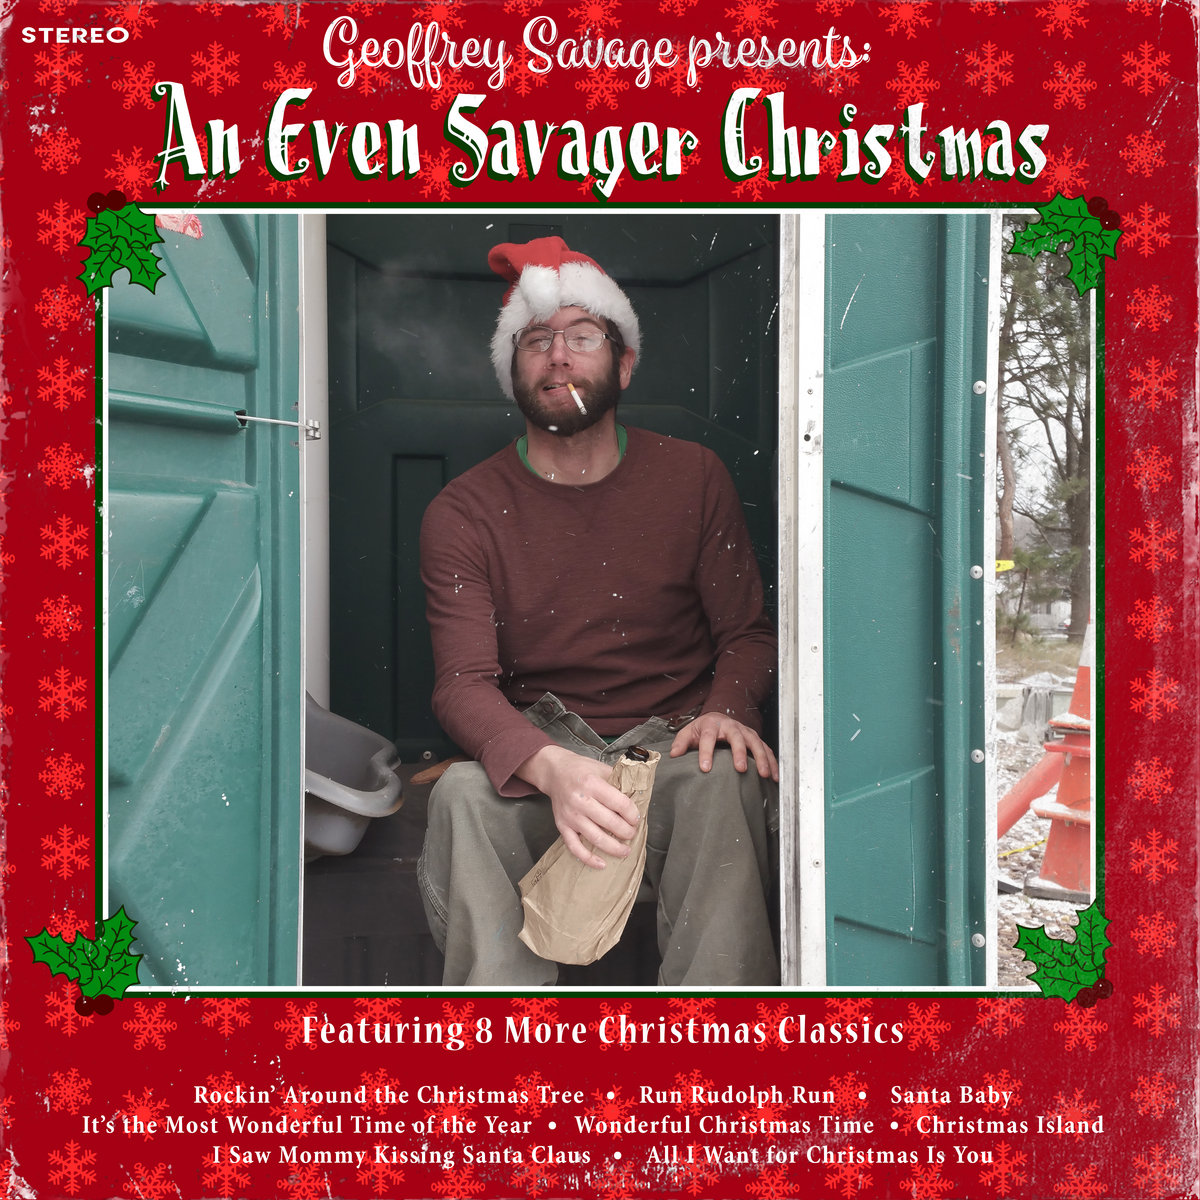 all i want for christmas is you from an even savager christmas by geoffrey savage - All I Want For Christmas Is You Original Artist